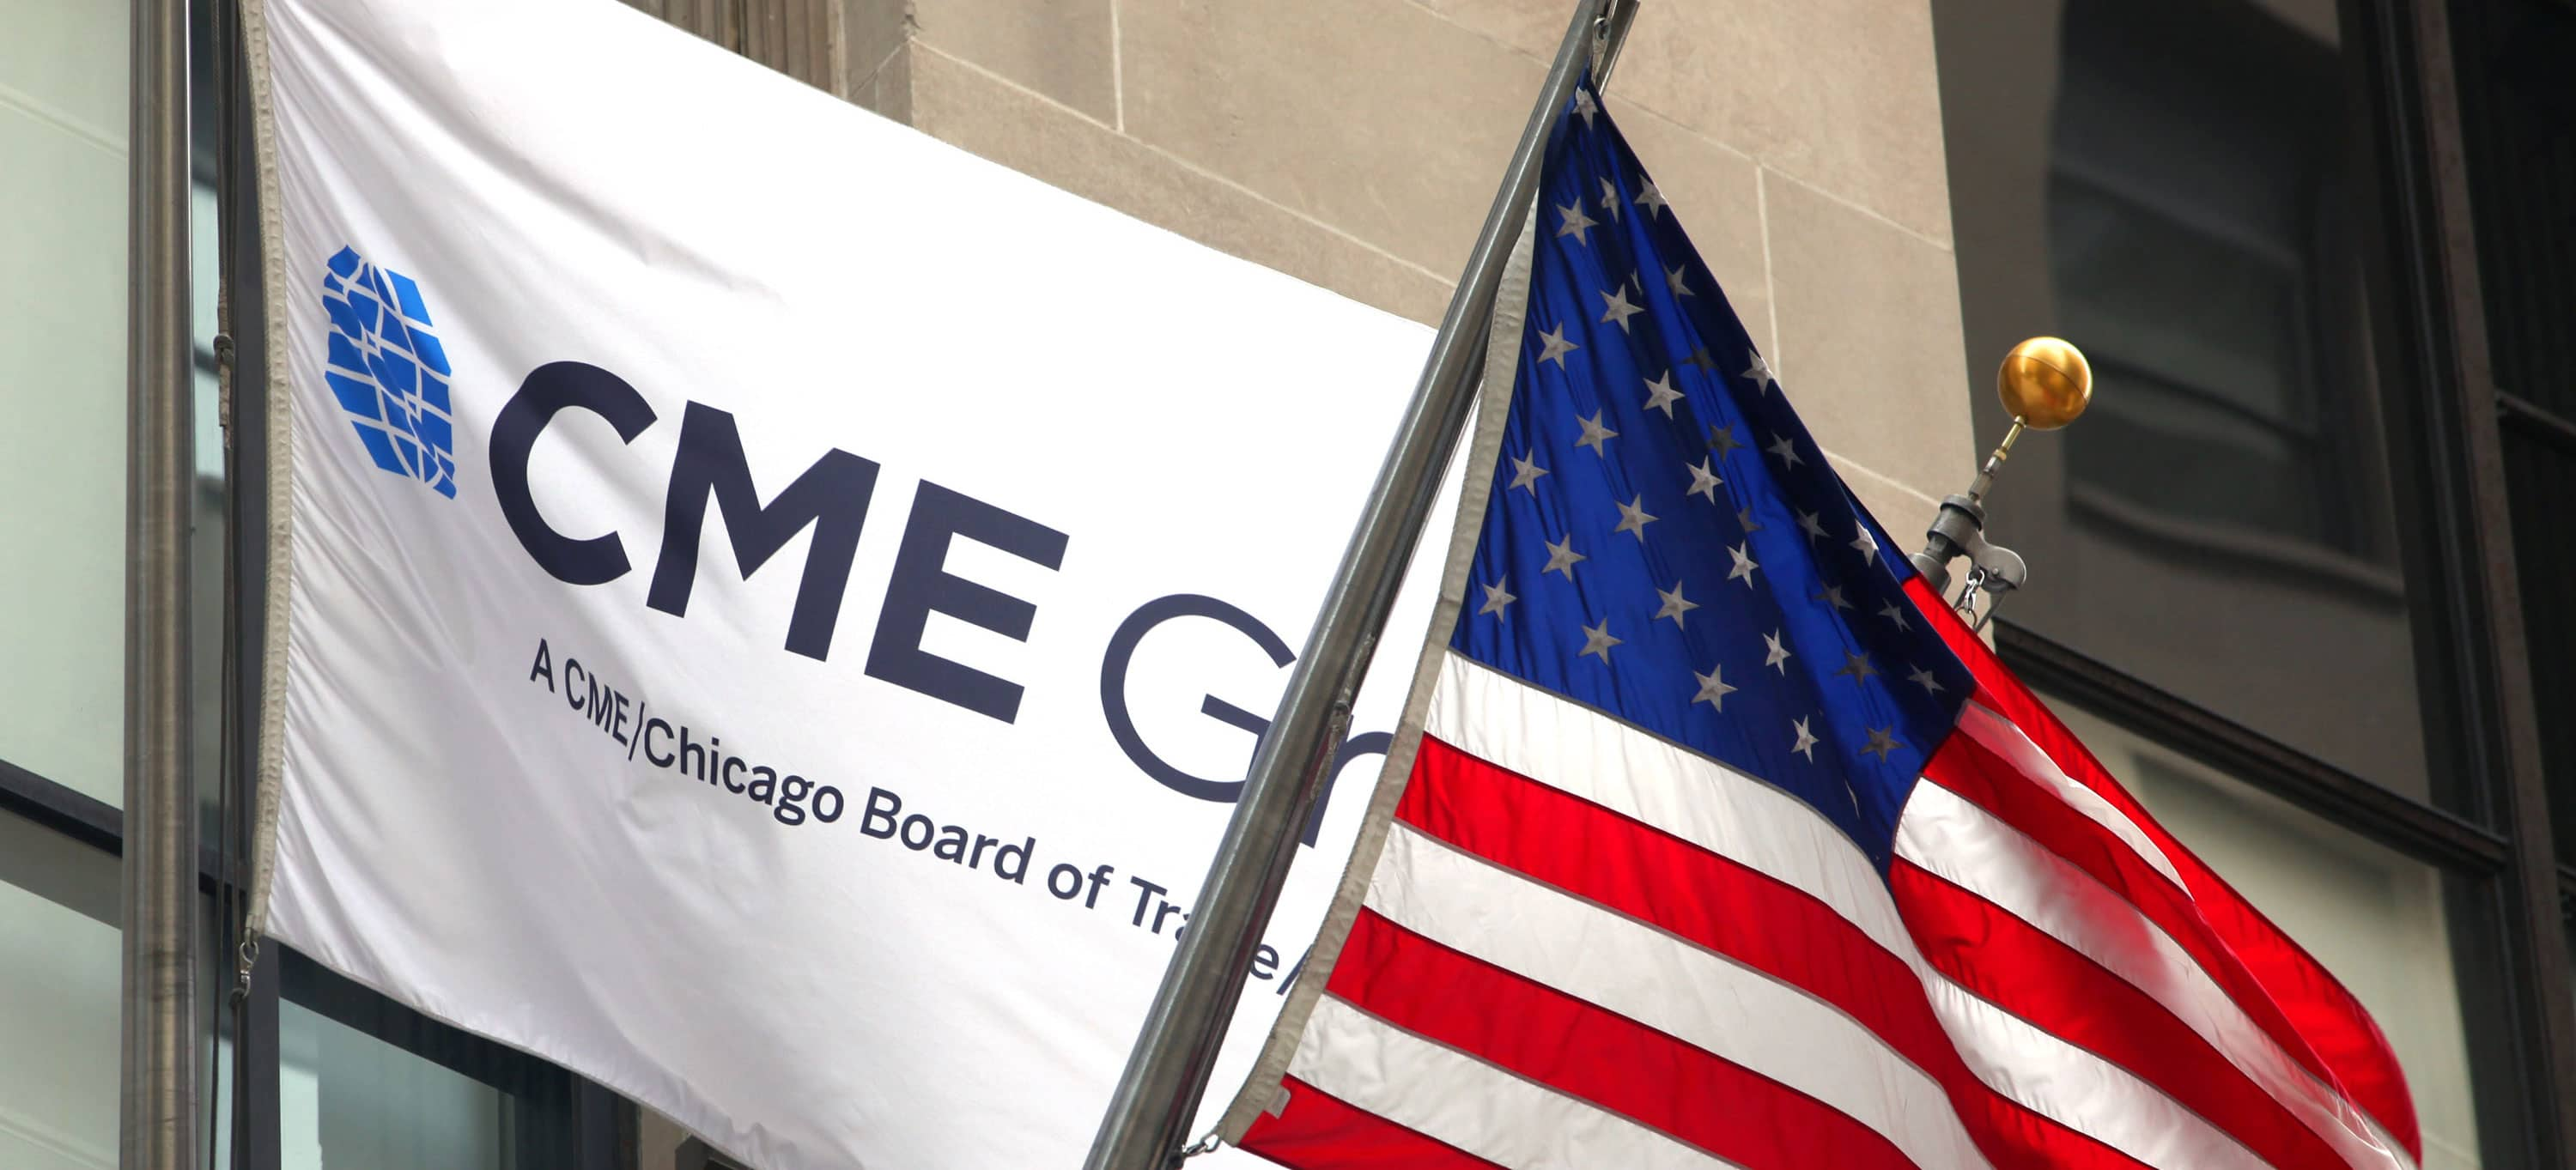 Cme group to go head to head with the ices dollar index with cme group to go head to head with the ices dollar index with launch of bloomberg biocorpaavc Choice Image